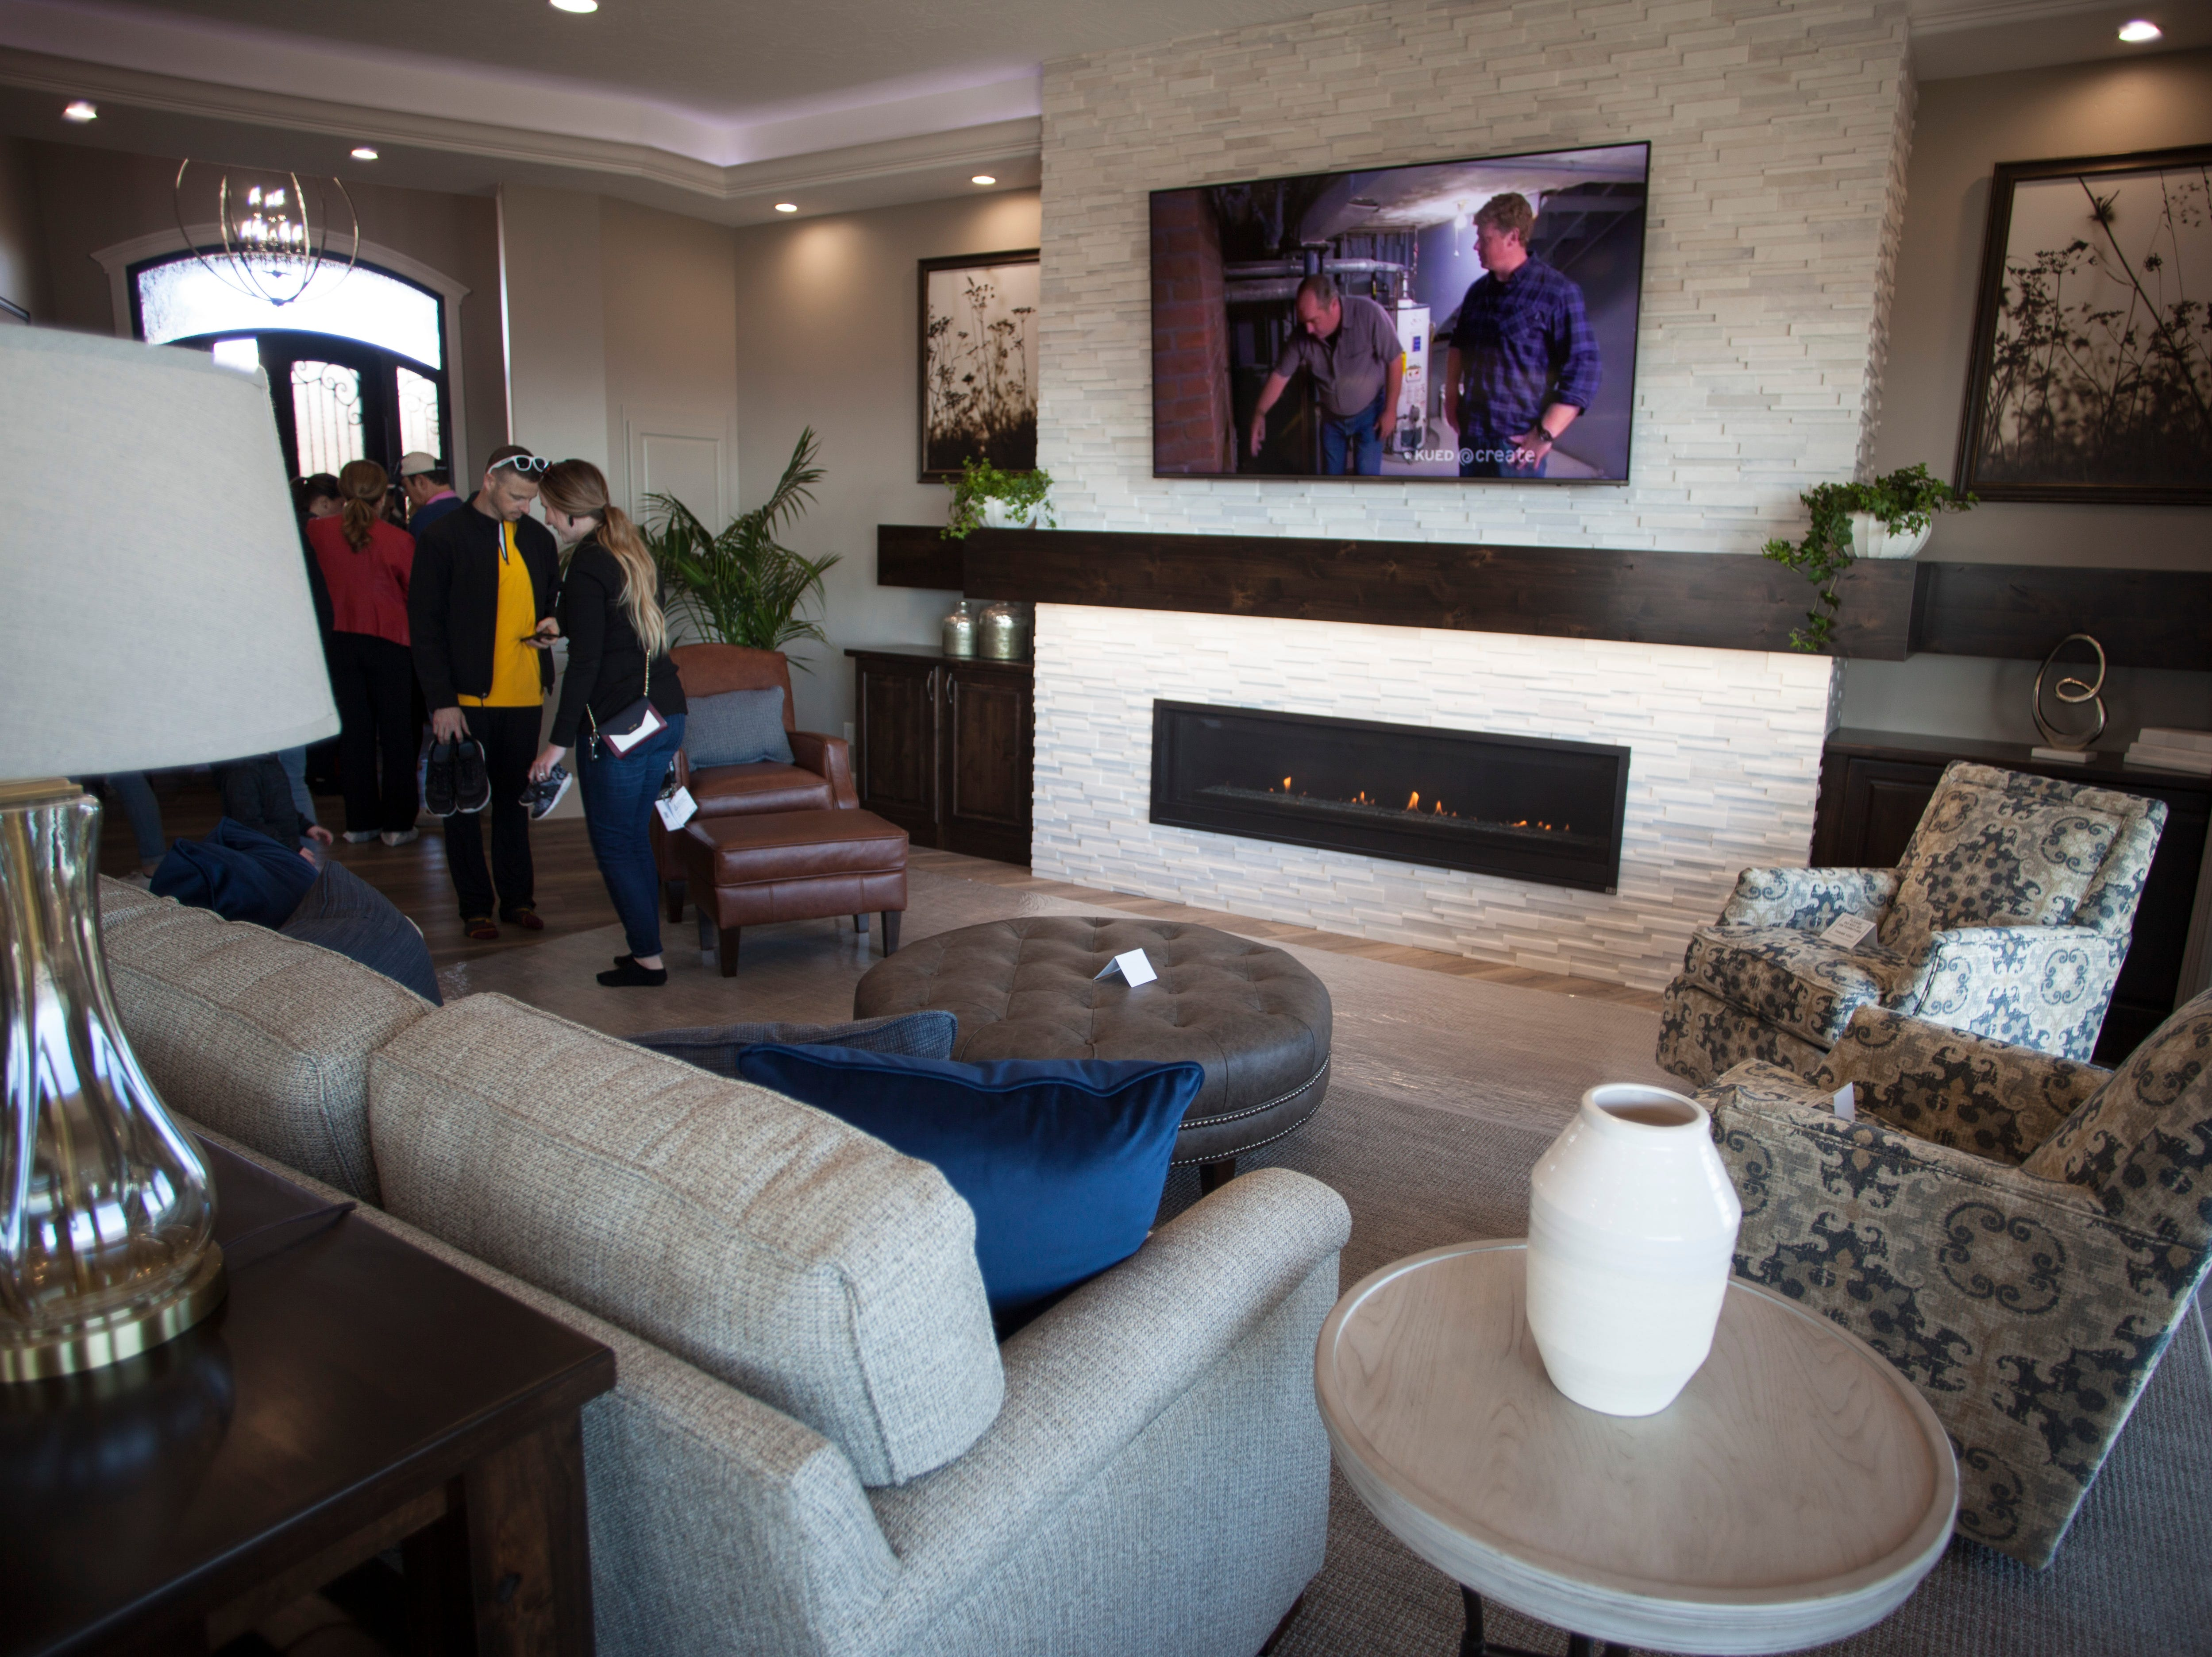 House number 1, Bella Vista at Stone Mountain, on the 2019 Parade of Homes Saturday, Feb. 23, 2019.